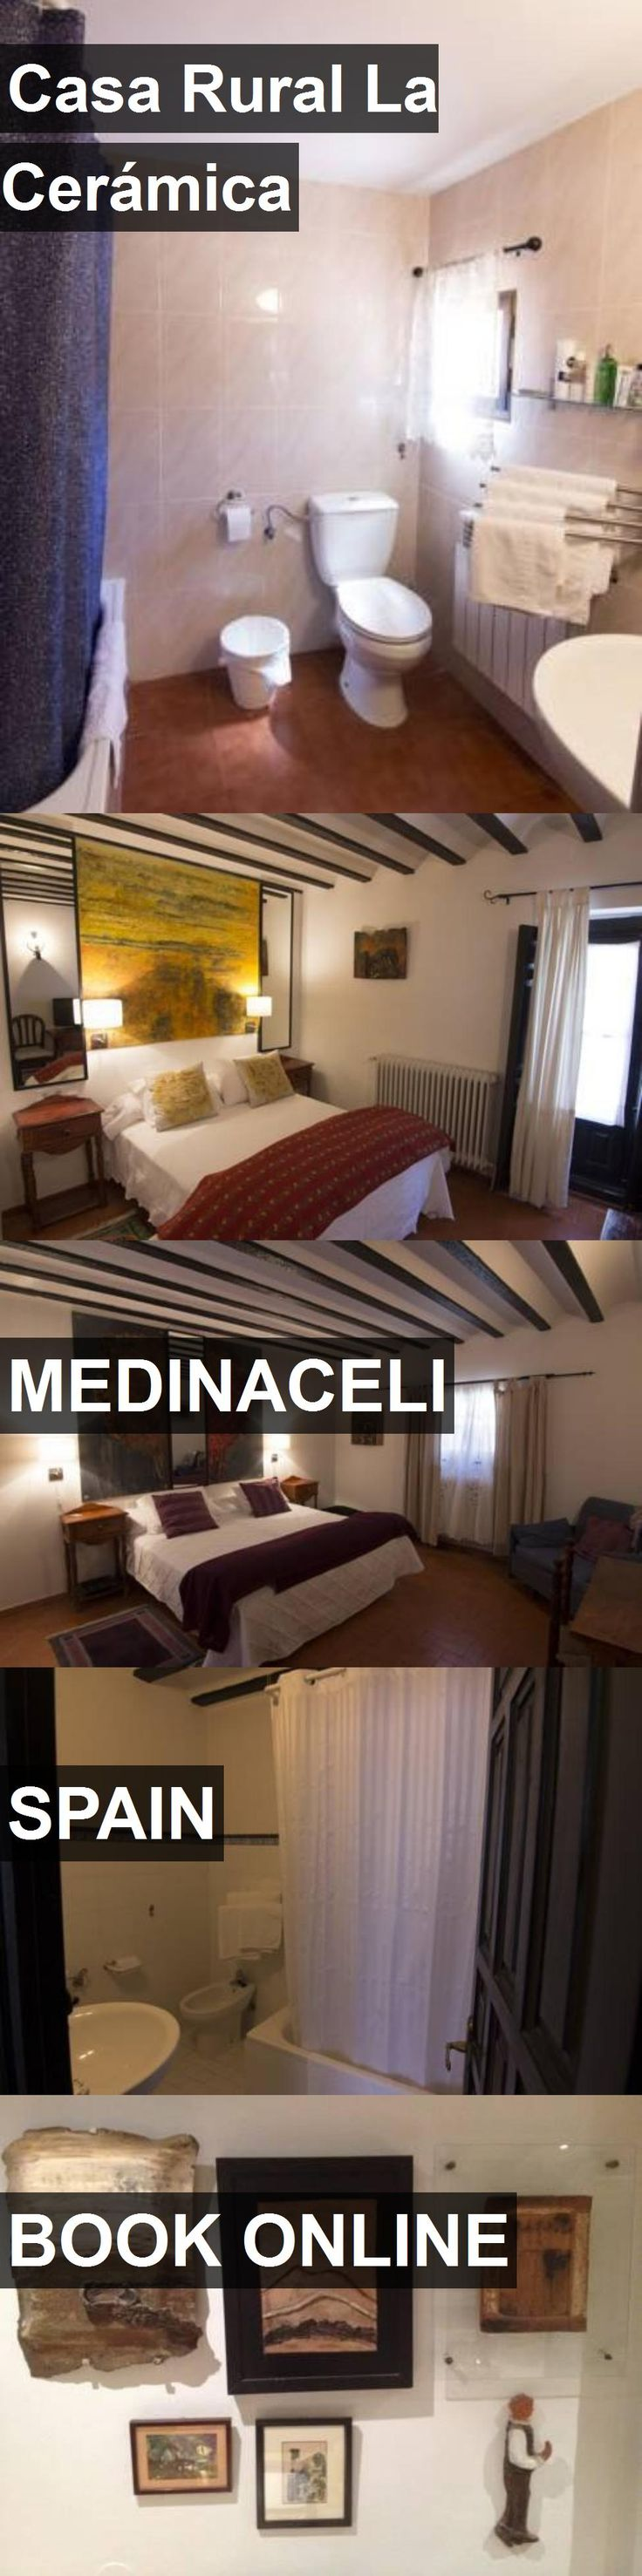 Hotel Casa Rural La Cerámica in Medinaceli, Spain. For more information, photos, reviews and best prices please follow the link. #Spain #Medinaceli #travel #vacation #hotel